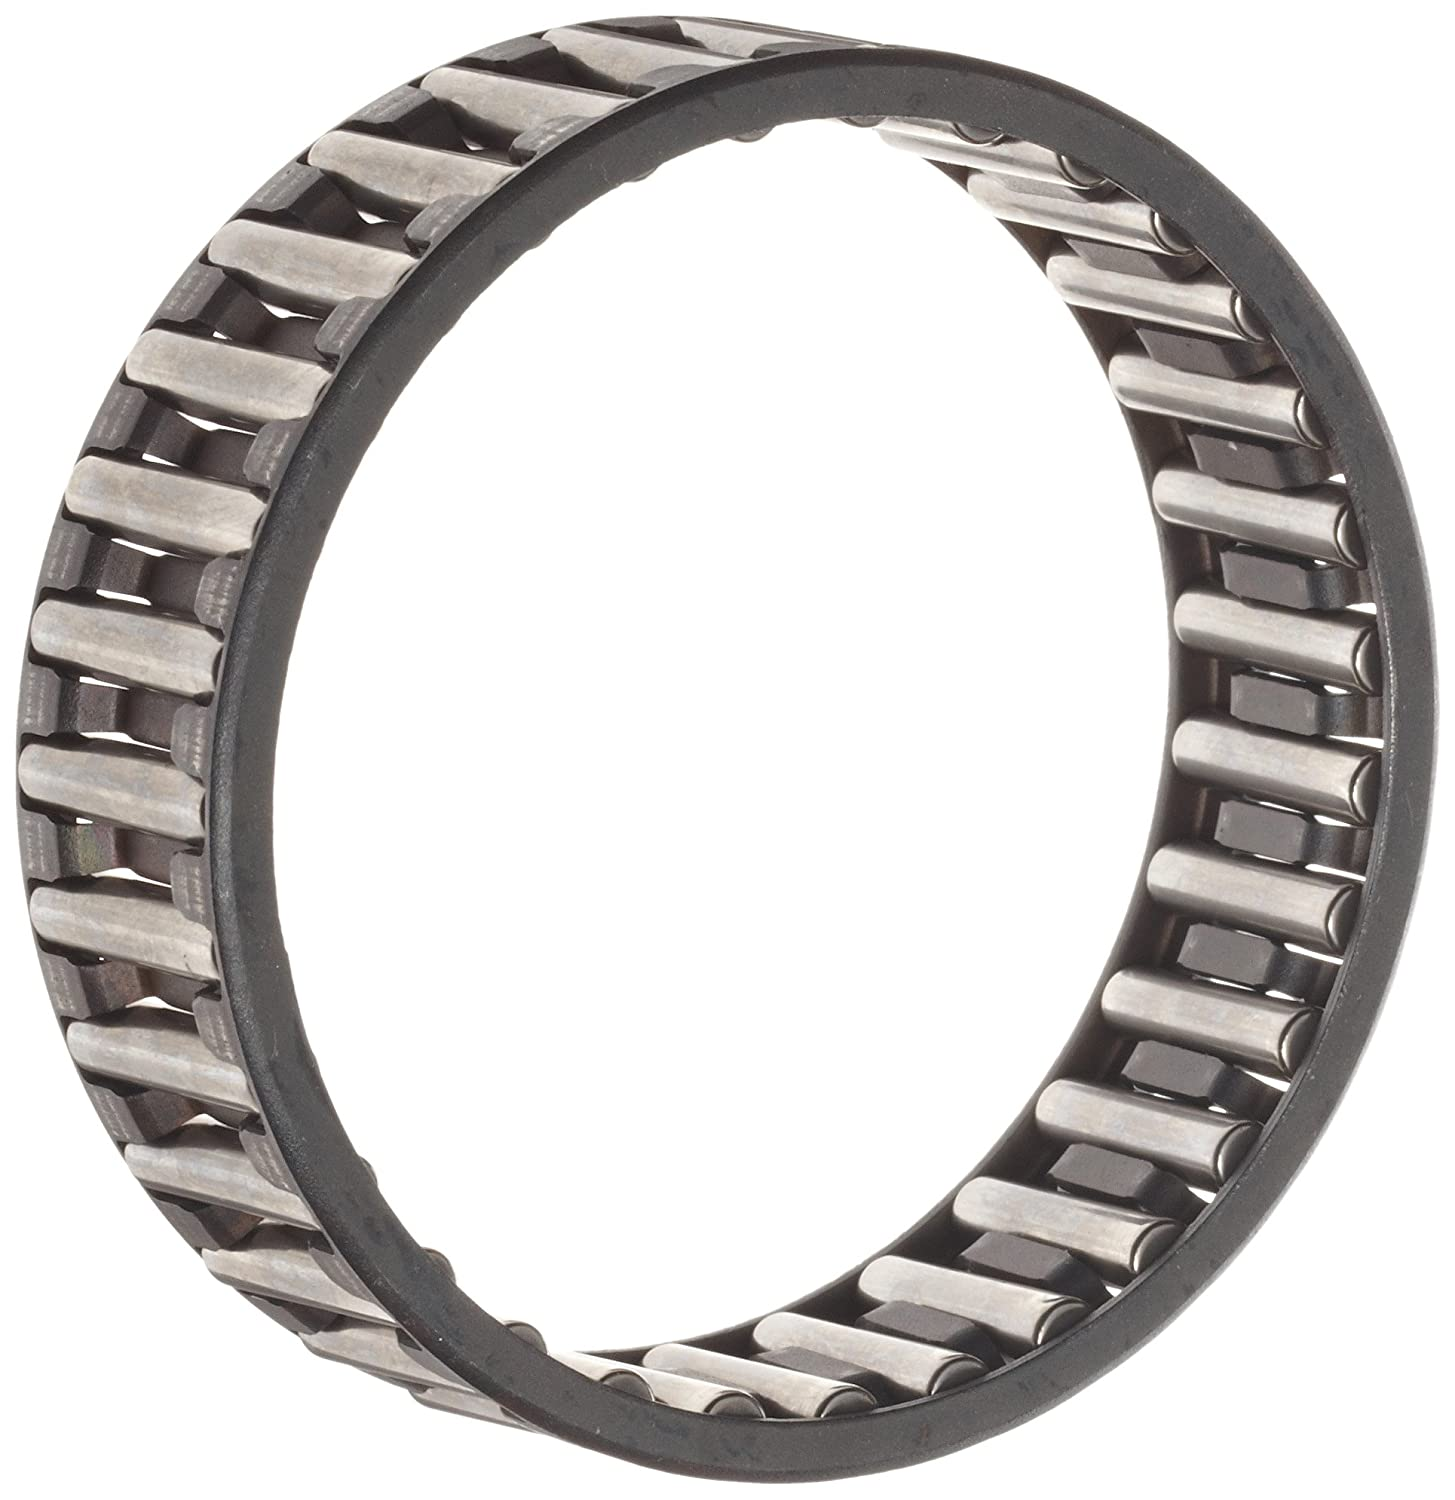 Open End 34mm OD Metric 13mm Width INA K30X34X13 Needle Roller Bearing 15000rpm Maximum Rotational Speed Steel Cage Single Row Cage and Roller 30mm ID